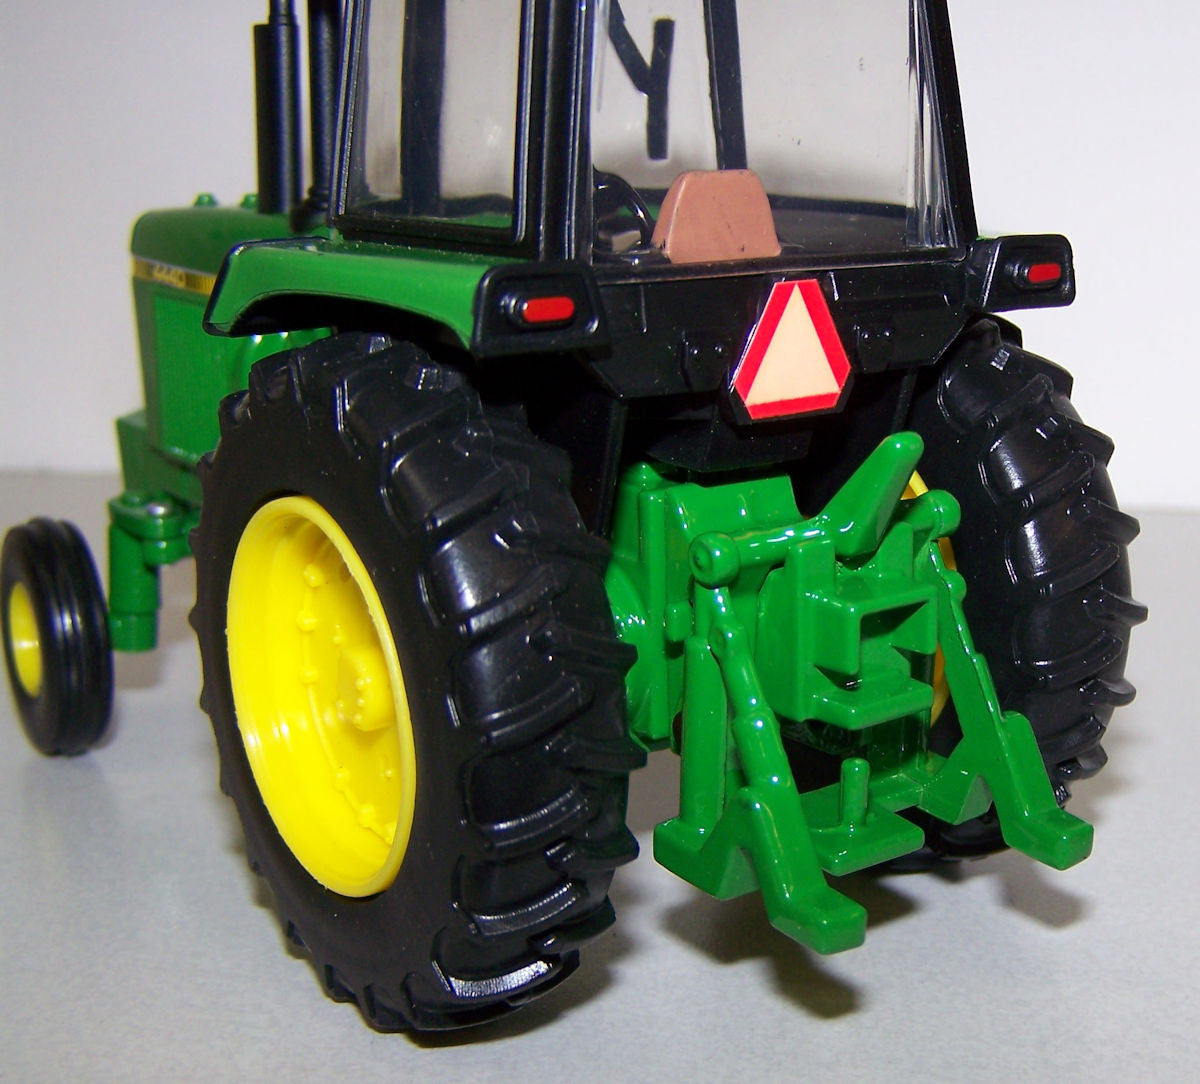 John Deere Pink Pedal Tractor moreover John Deere 2640 Tractor Fuel Pump also View all as well Antique Tractors Antique Tractor Resources as well John Deere 7930 Kids Toy Pedal Tractor. on john deere pedal tractor toy